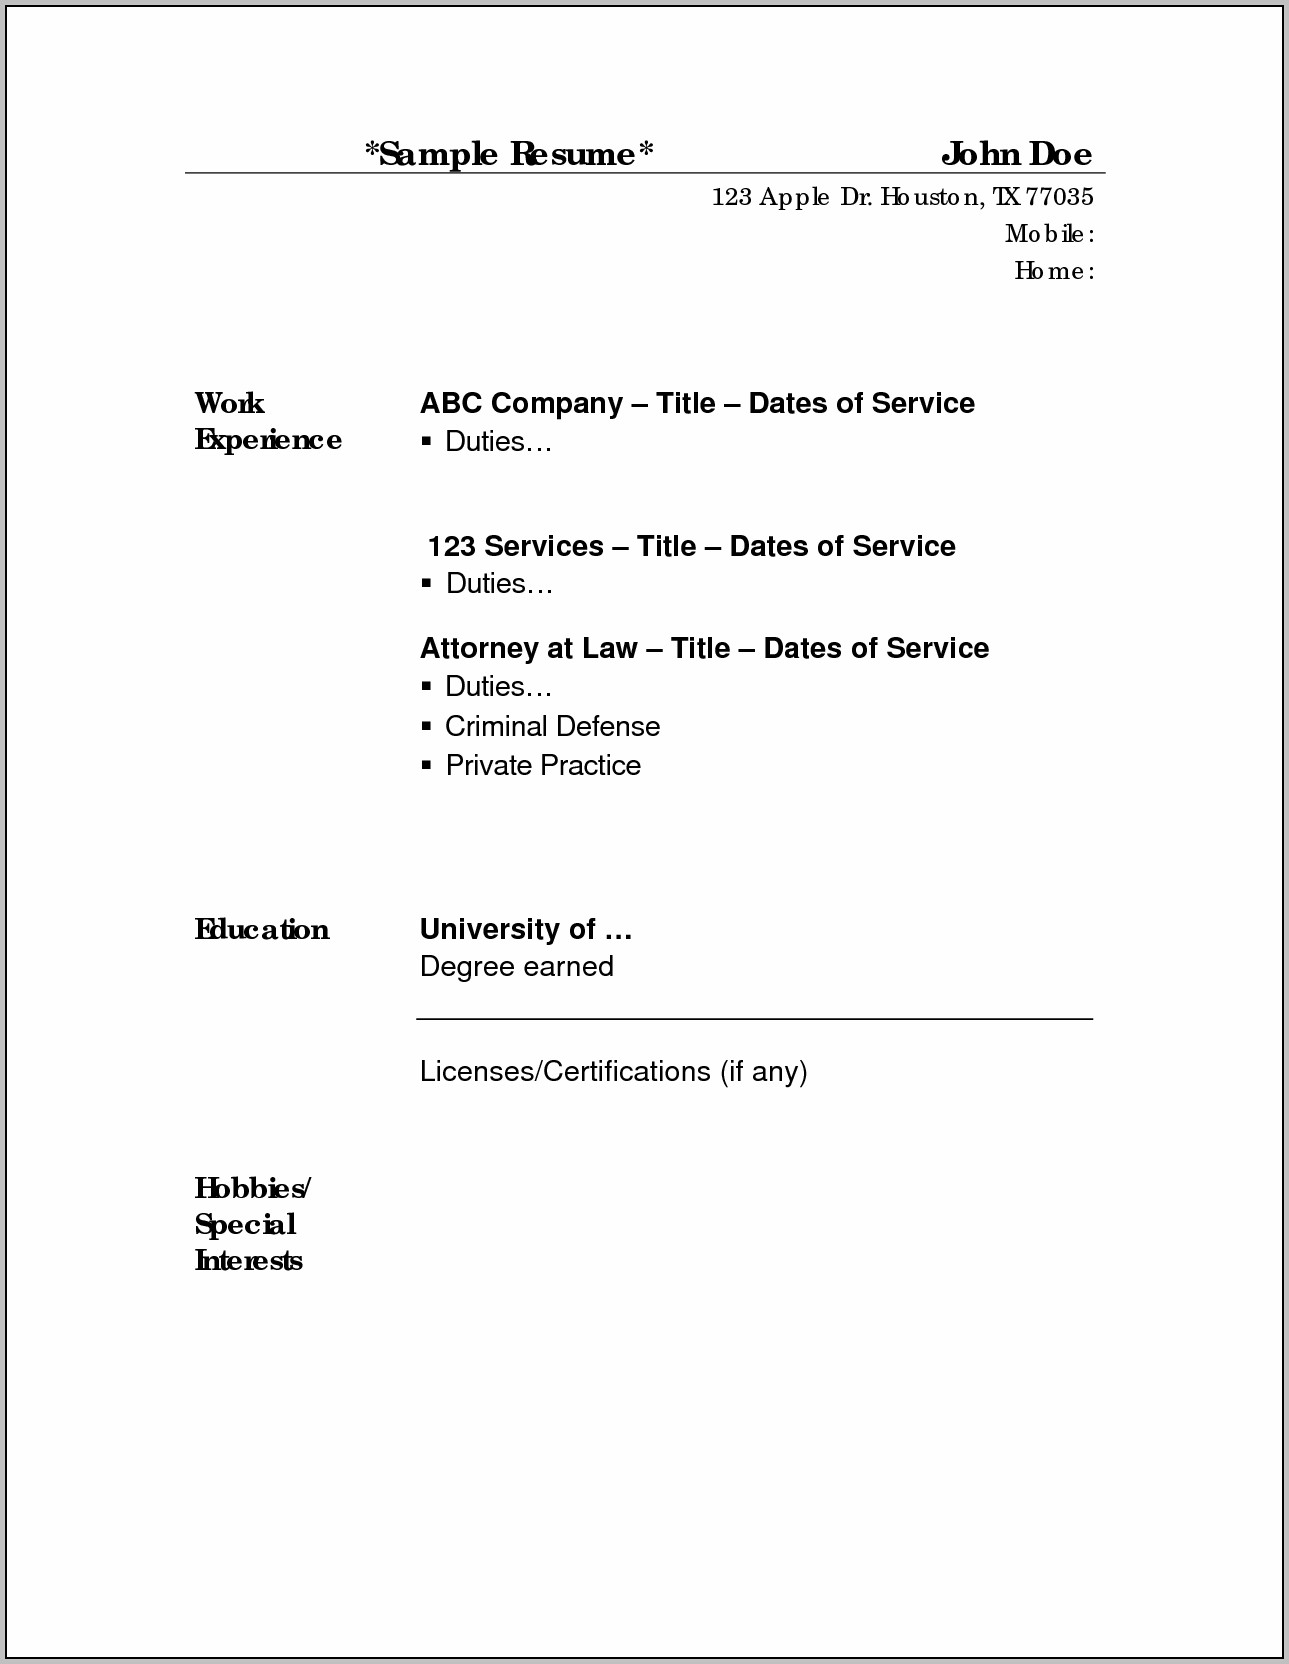 Apple Resume Template Resume Planner And Letter Template Throughout Free Resume Templates For Mac